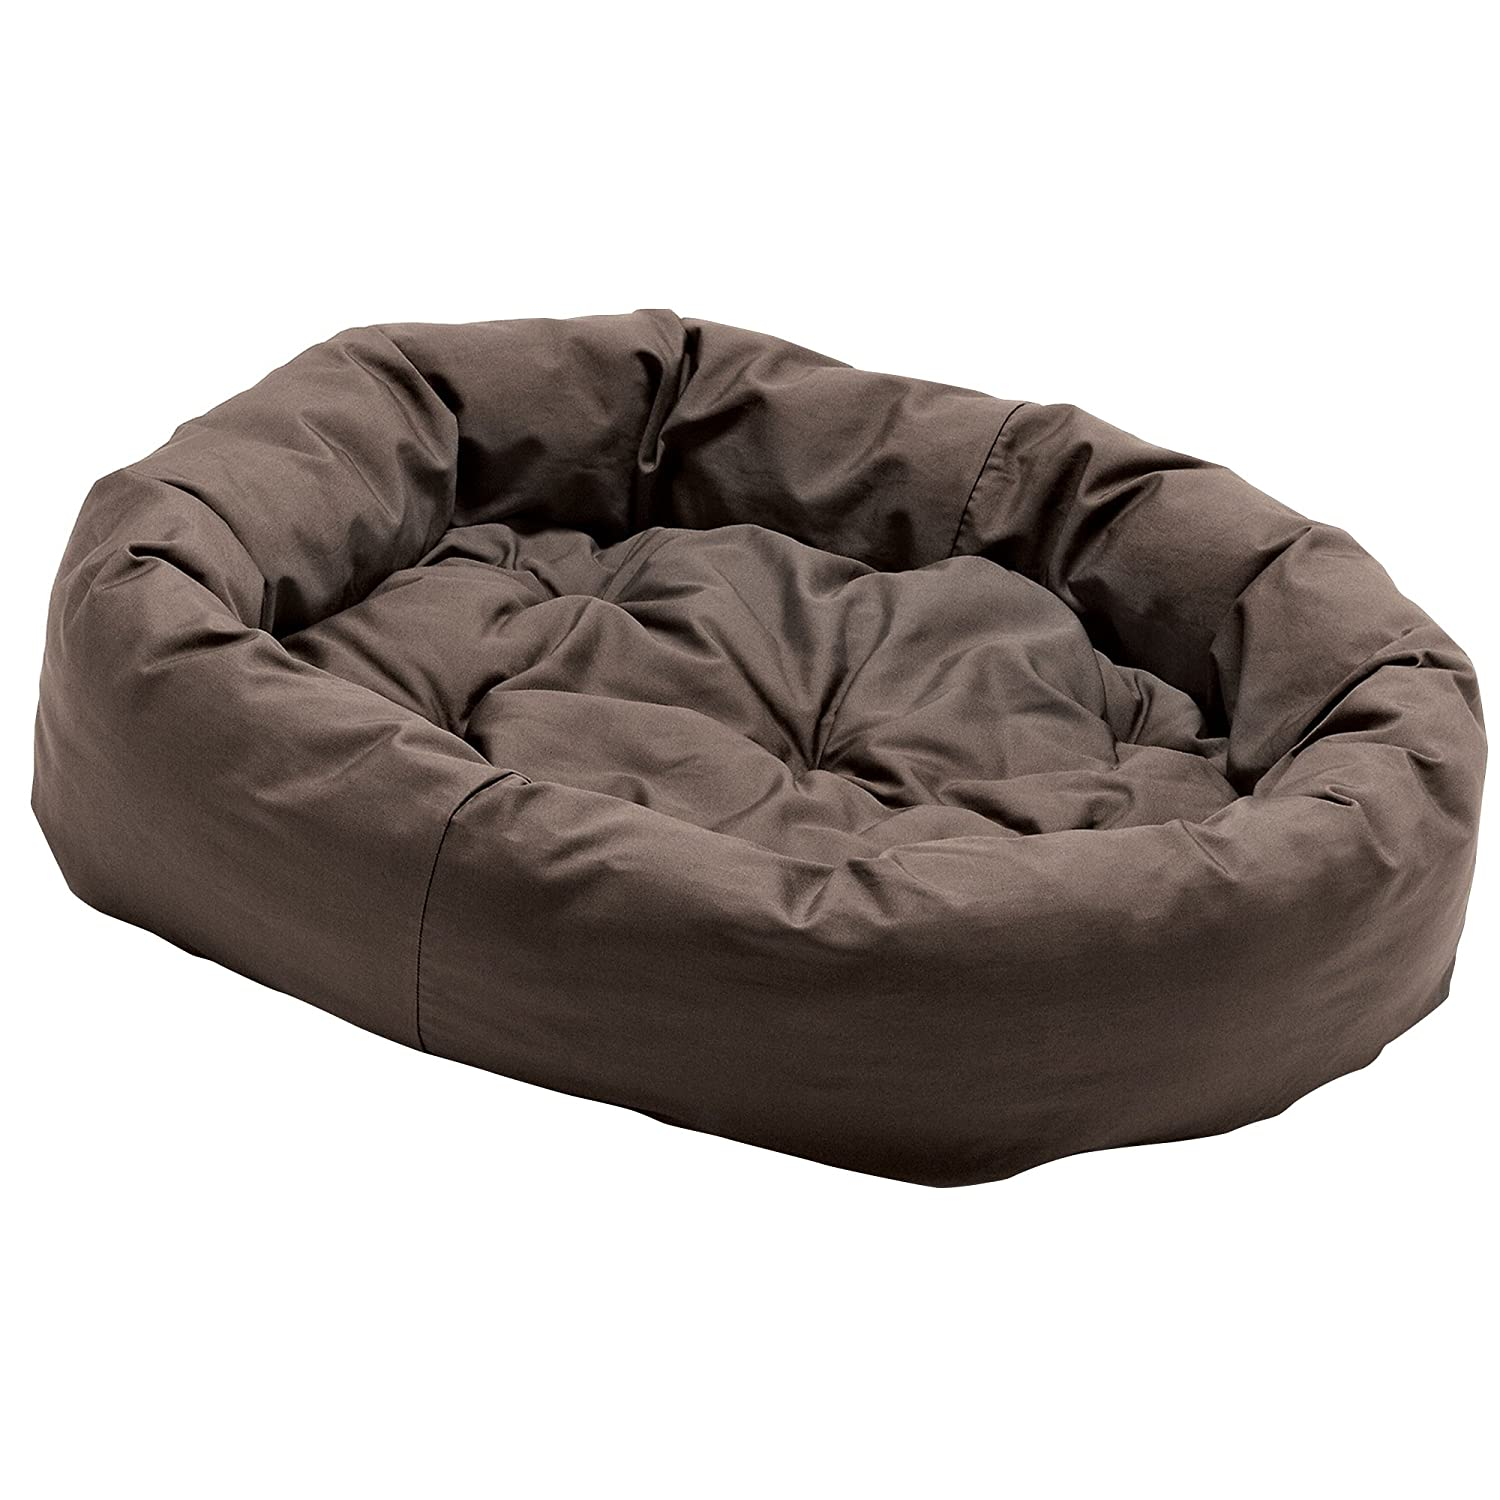 Dog Gone Smart Donut Pet Bed (Large) (Brown)